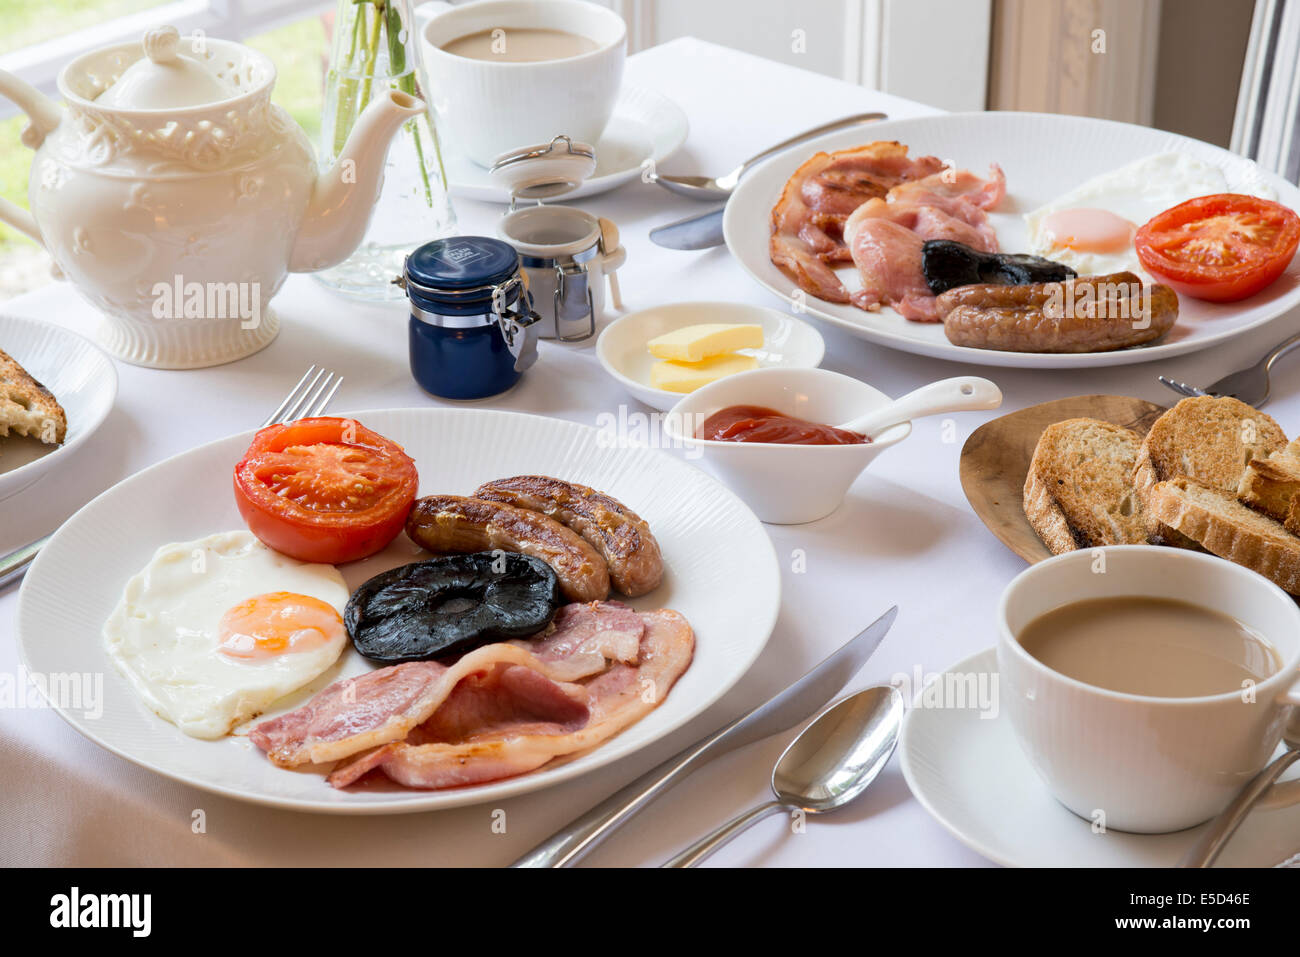 traditional english breakfast table laid out by window